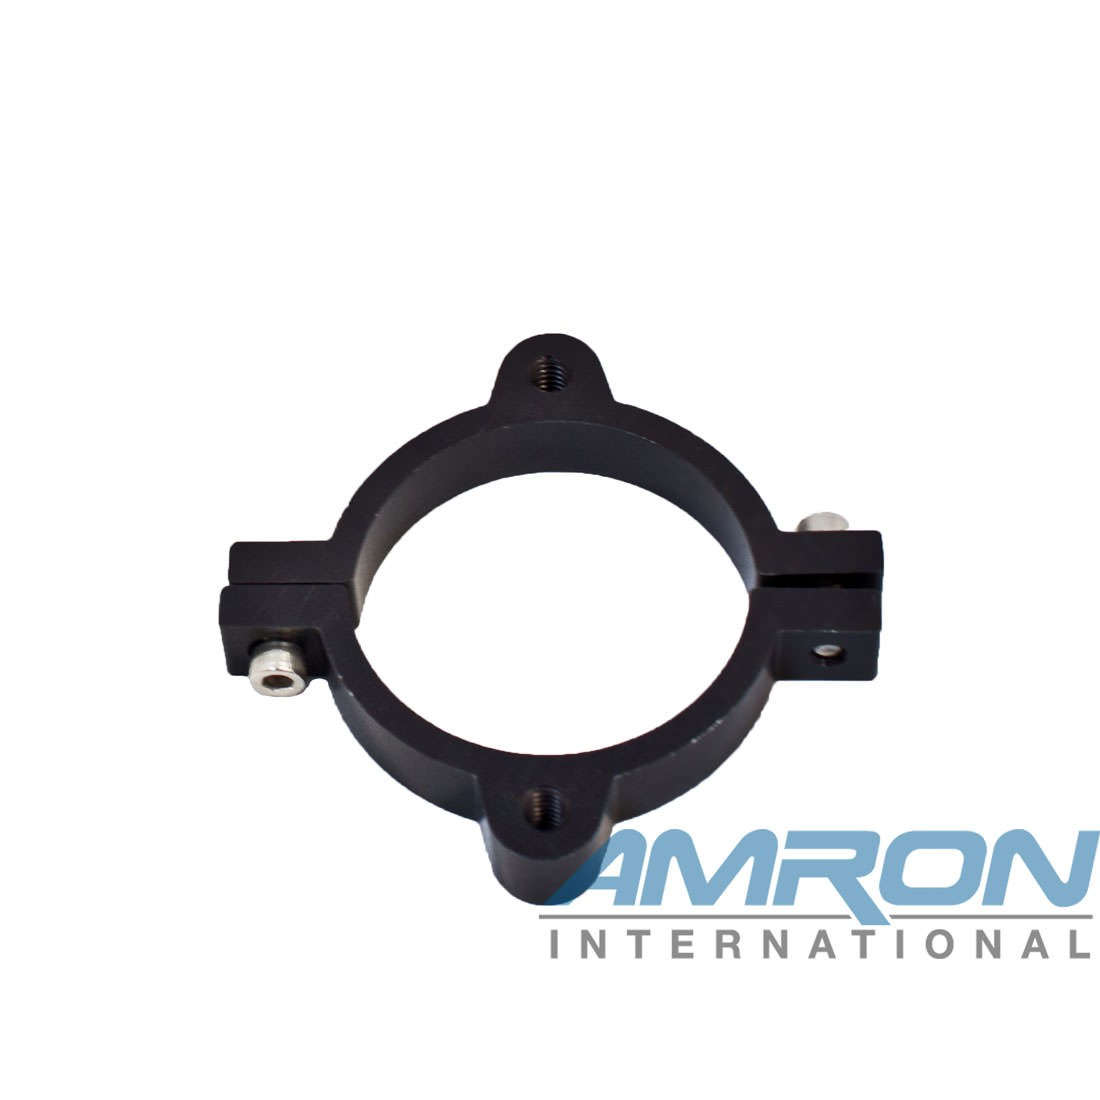 Tescom Mounting Bracket 1129